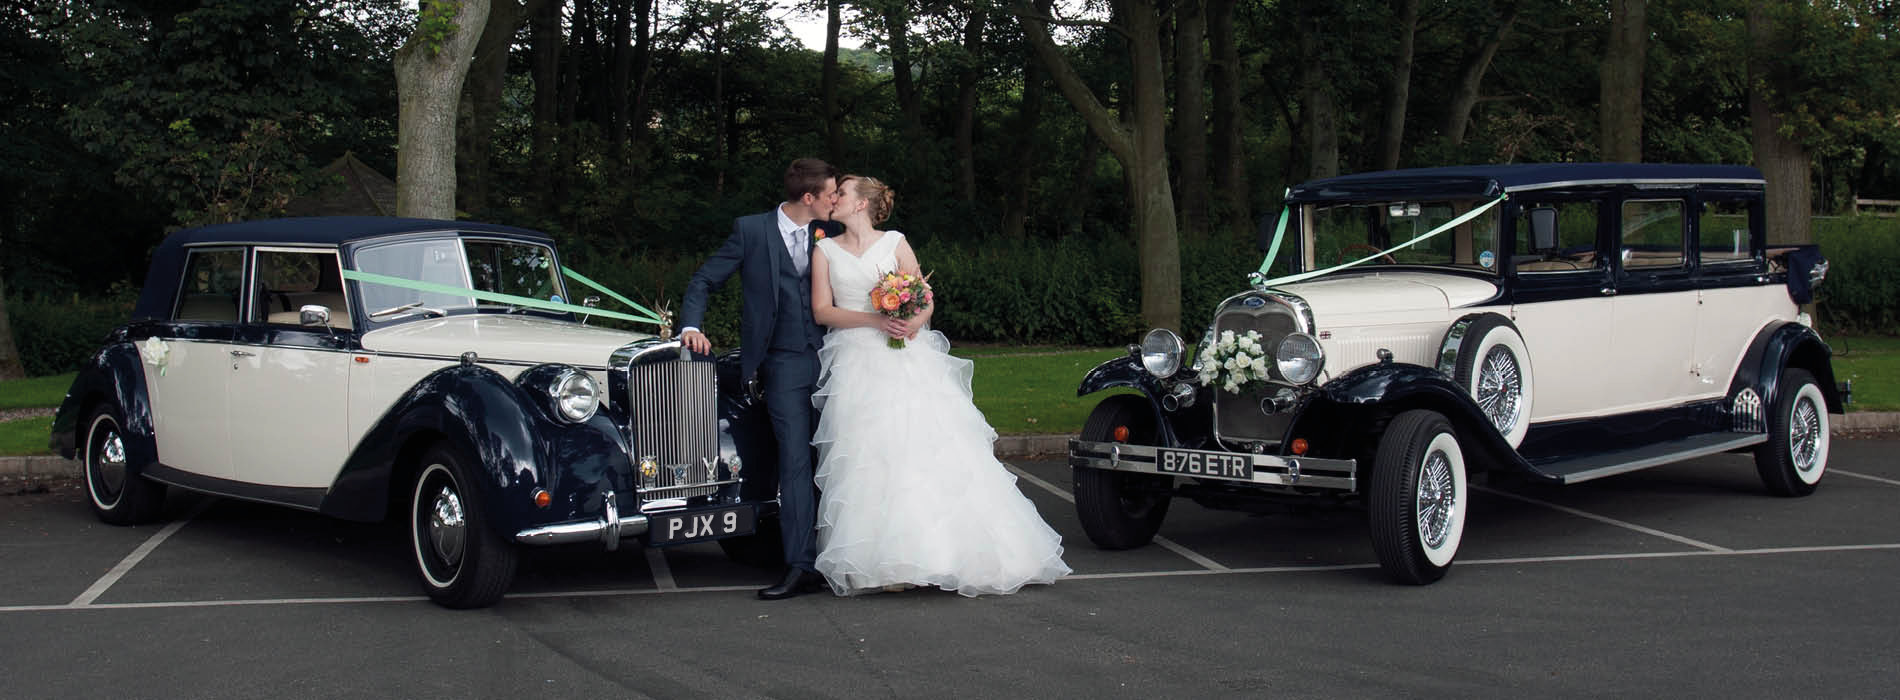 wedding cars huddersfield